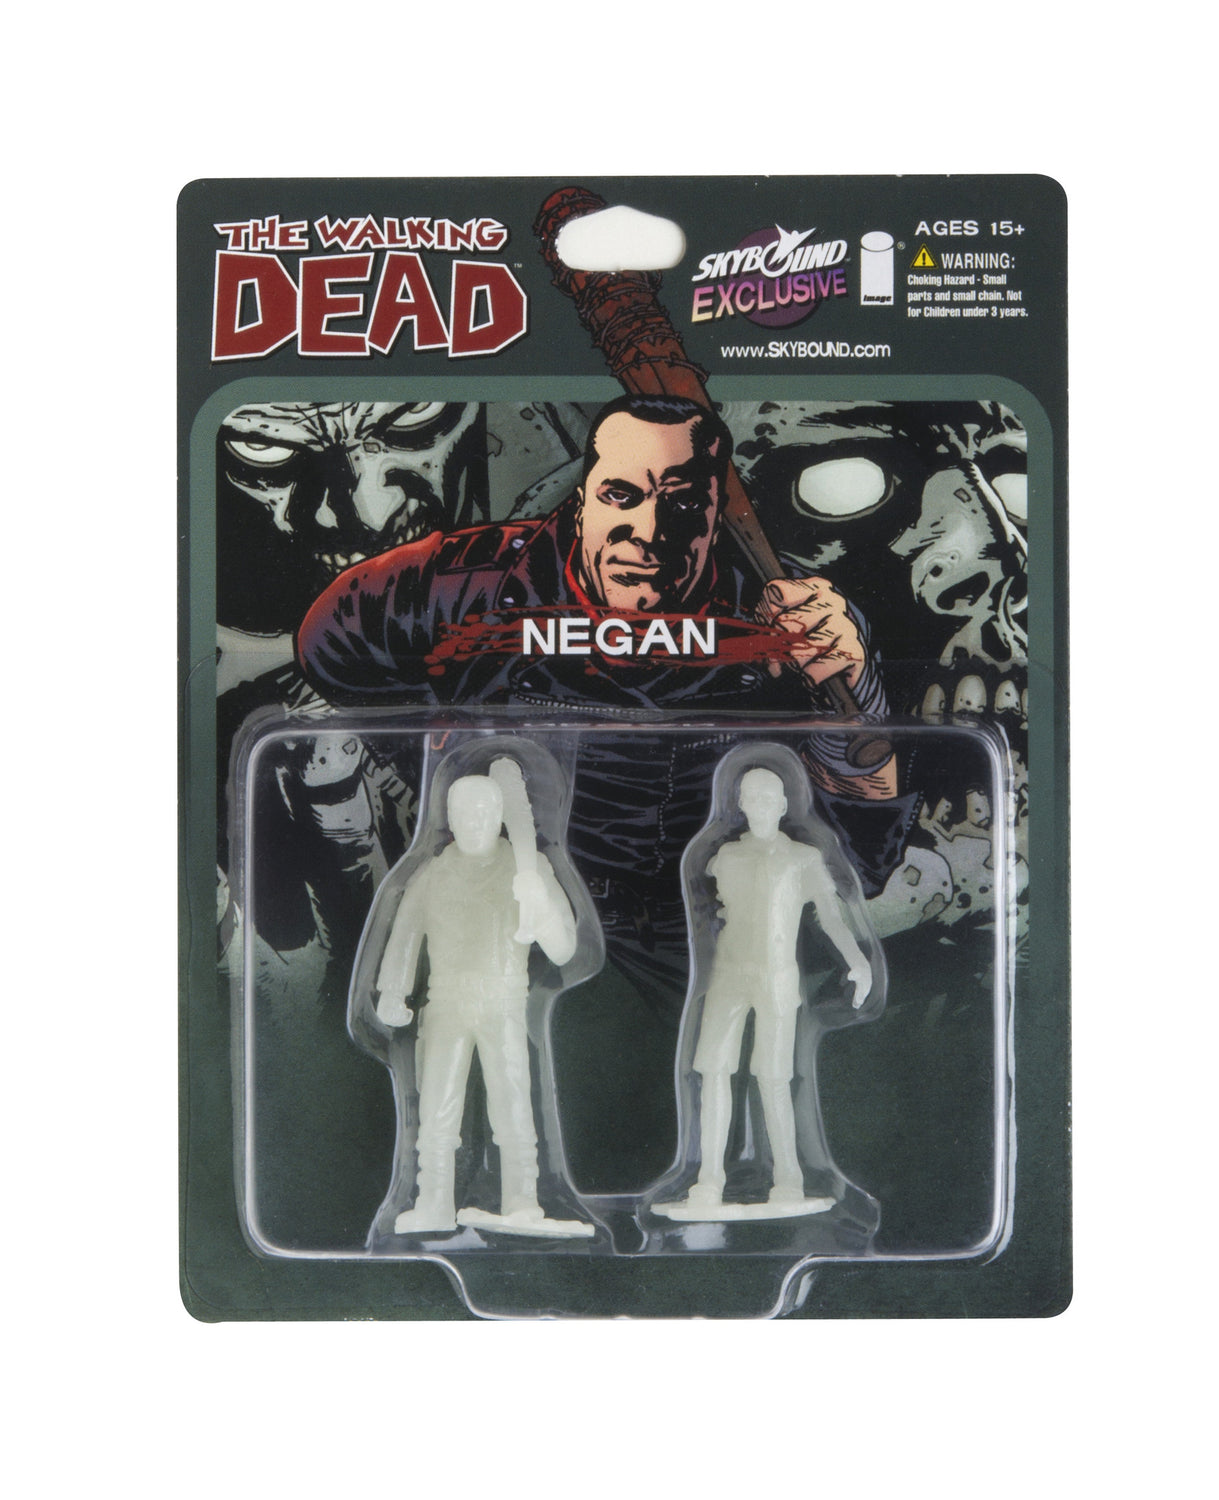 THE WALKING DEAD - Negan PVC Figure (Glow in the Dark)